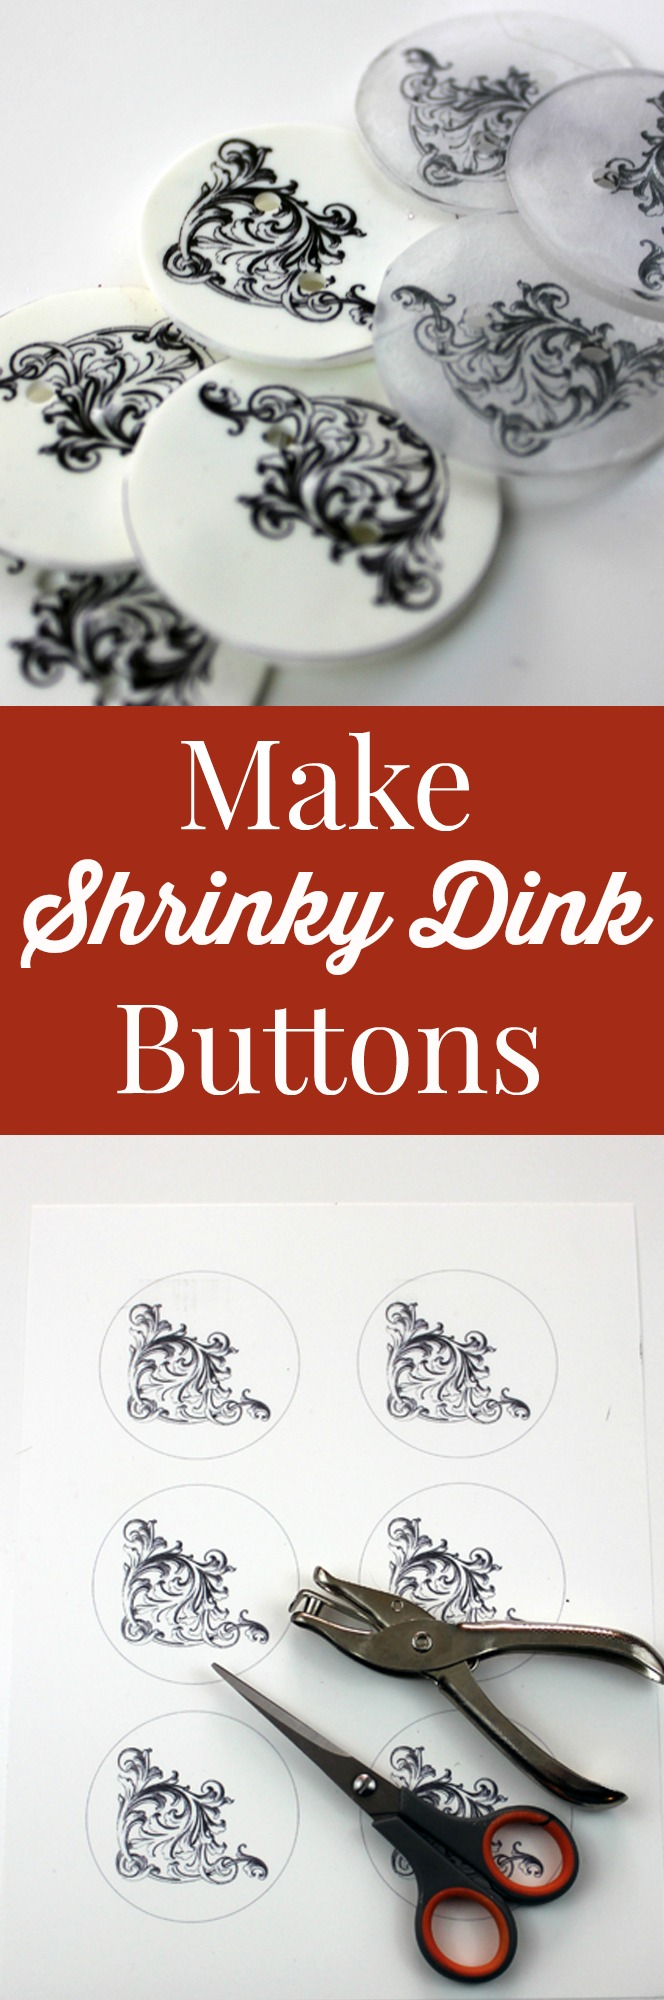 Make Shrinky Dink Buttons